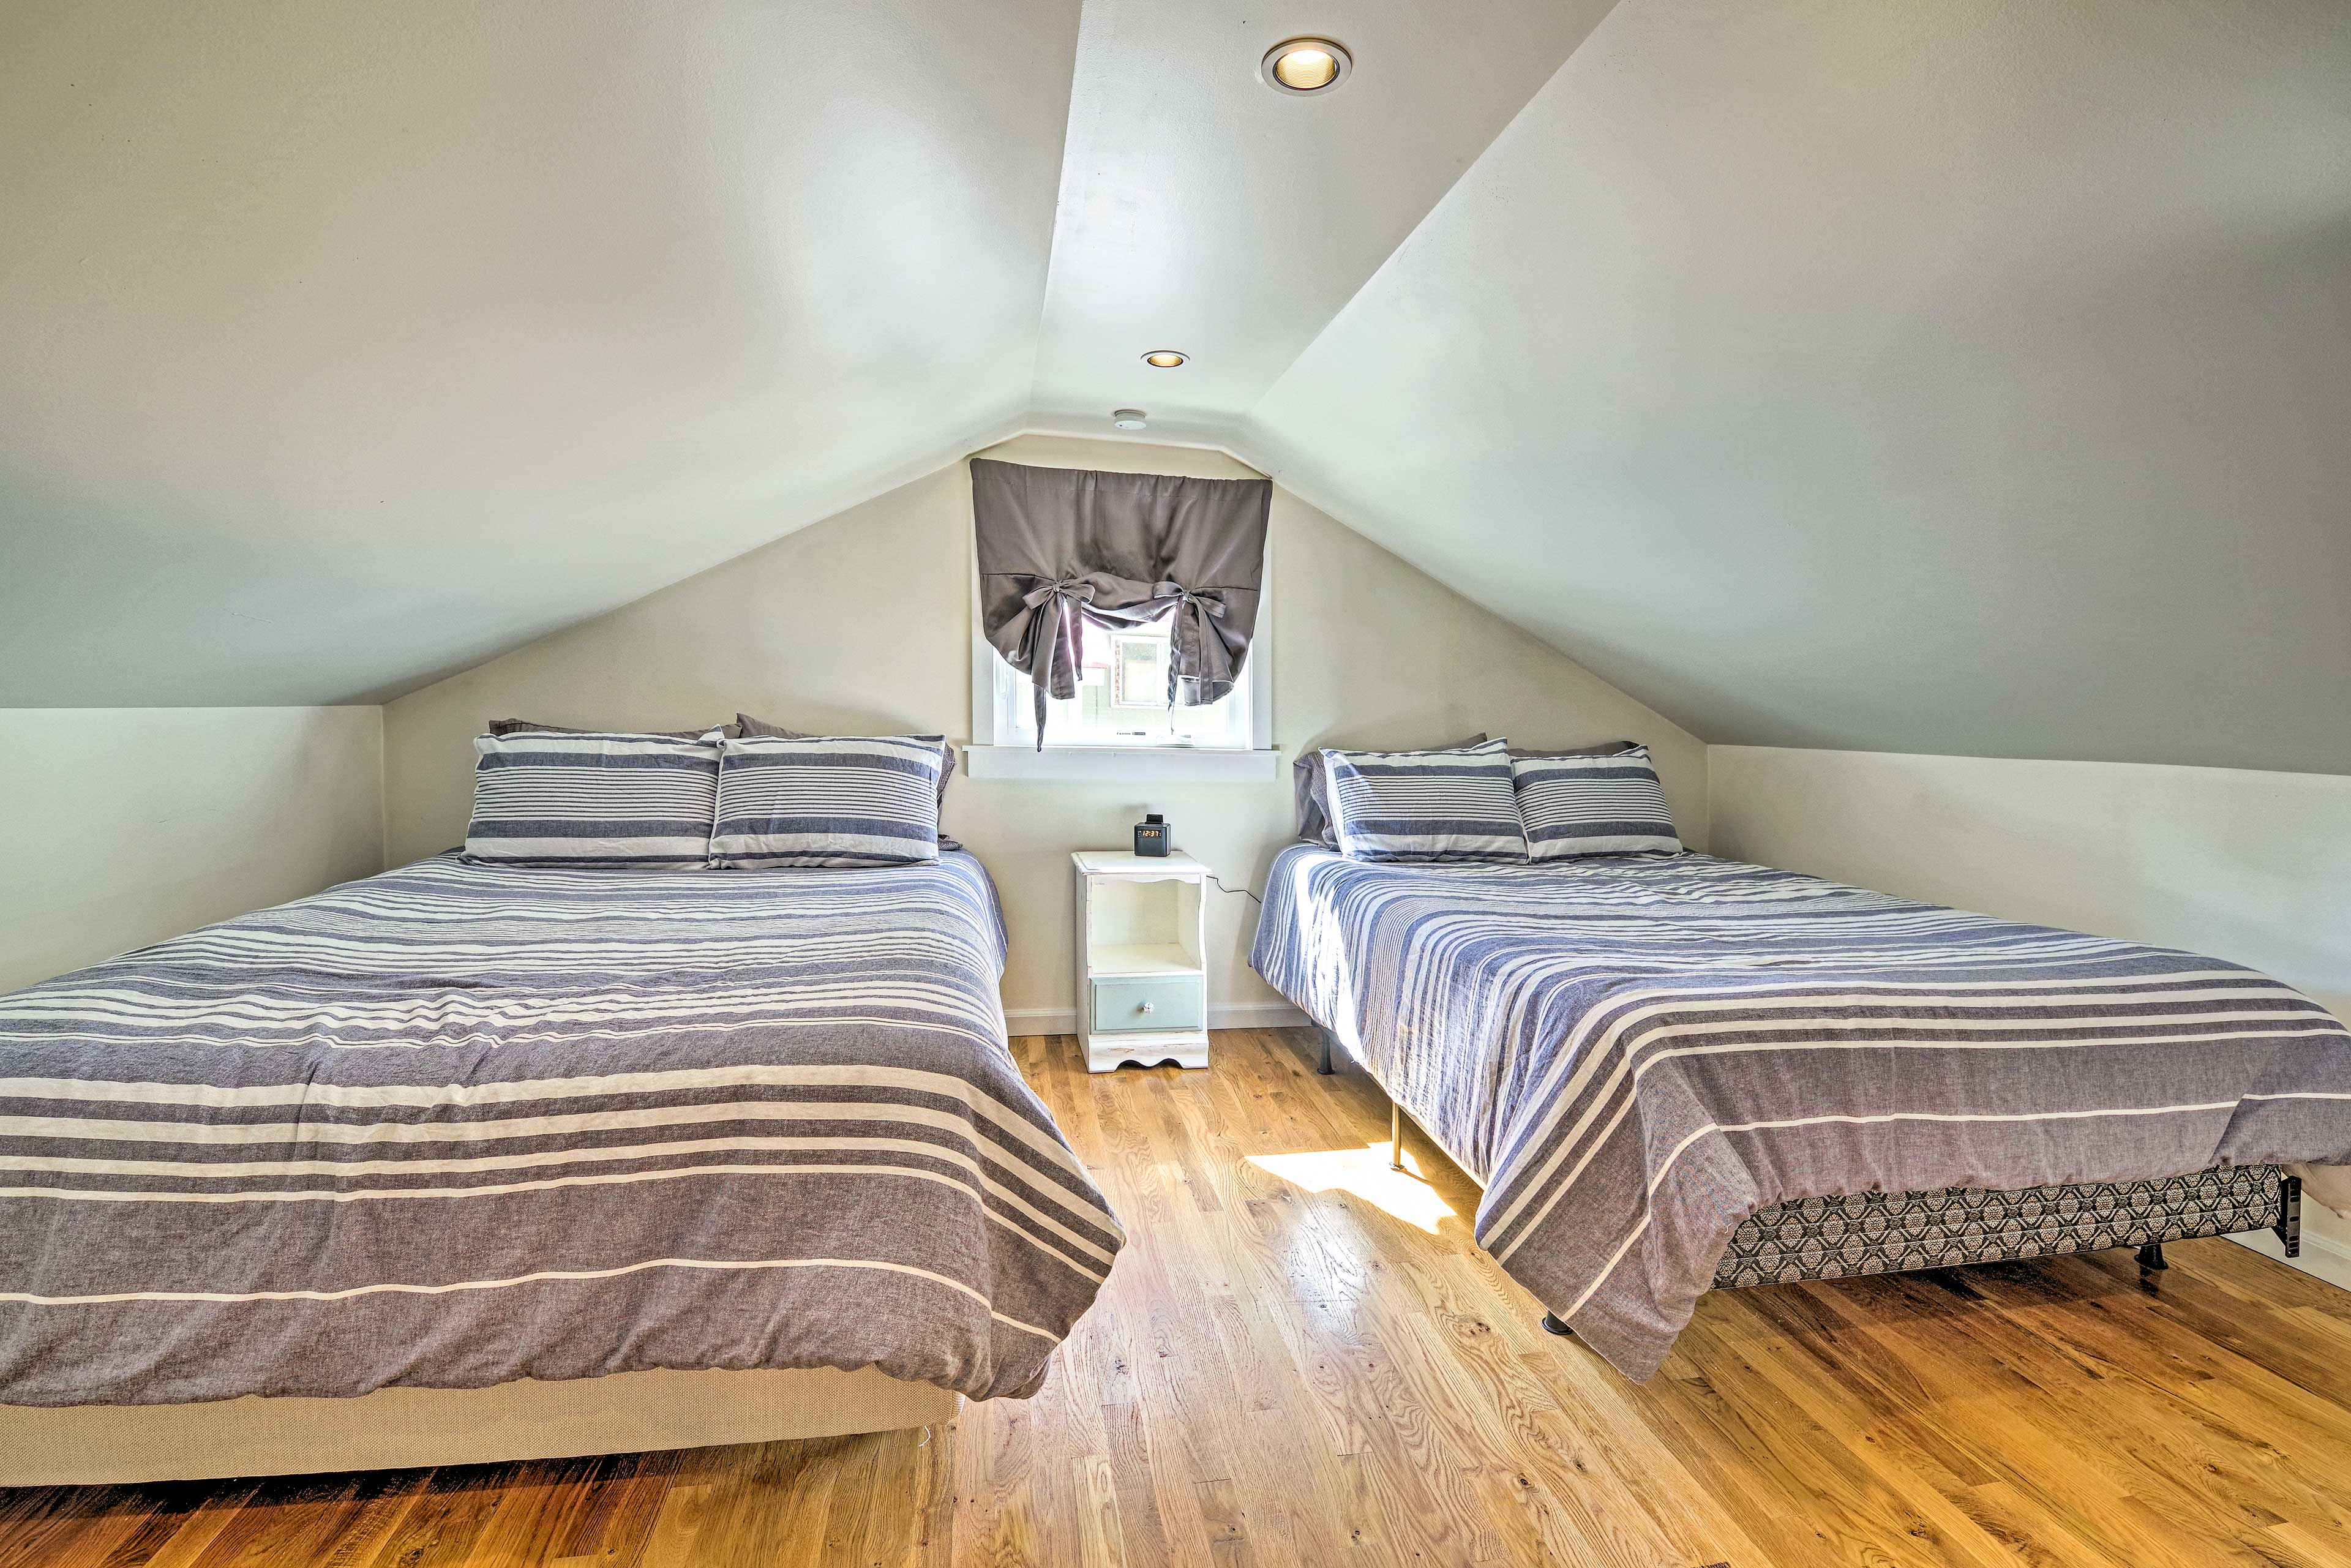 The fourth bedroom is equipped with 2 queen beds.